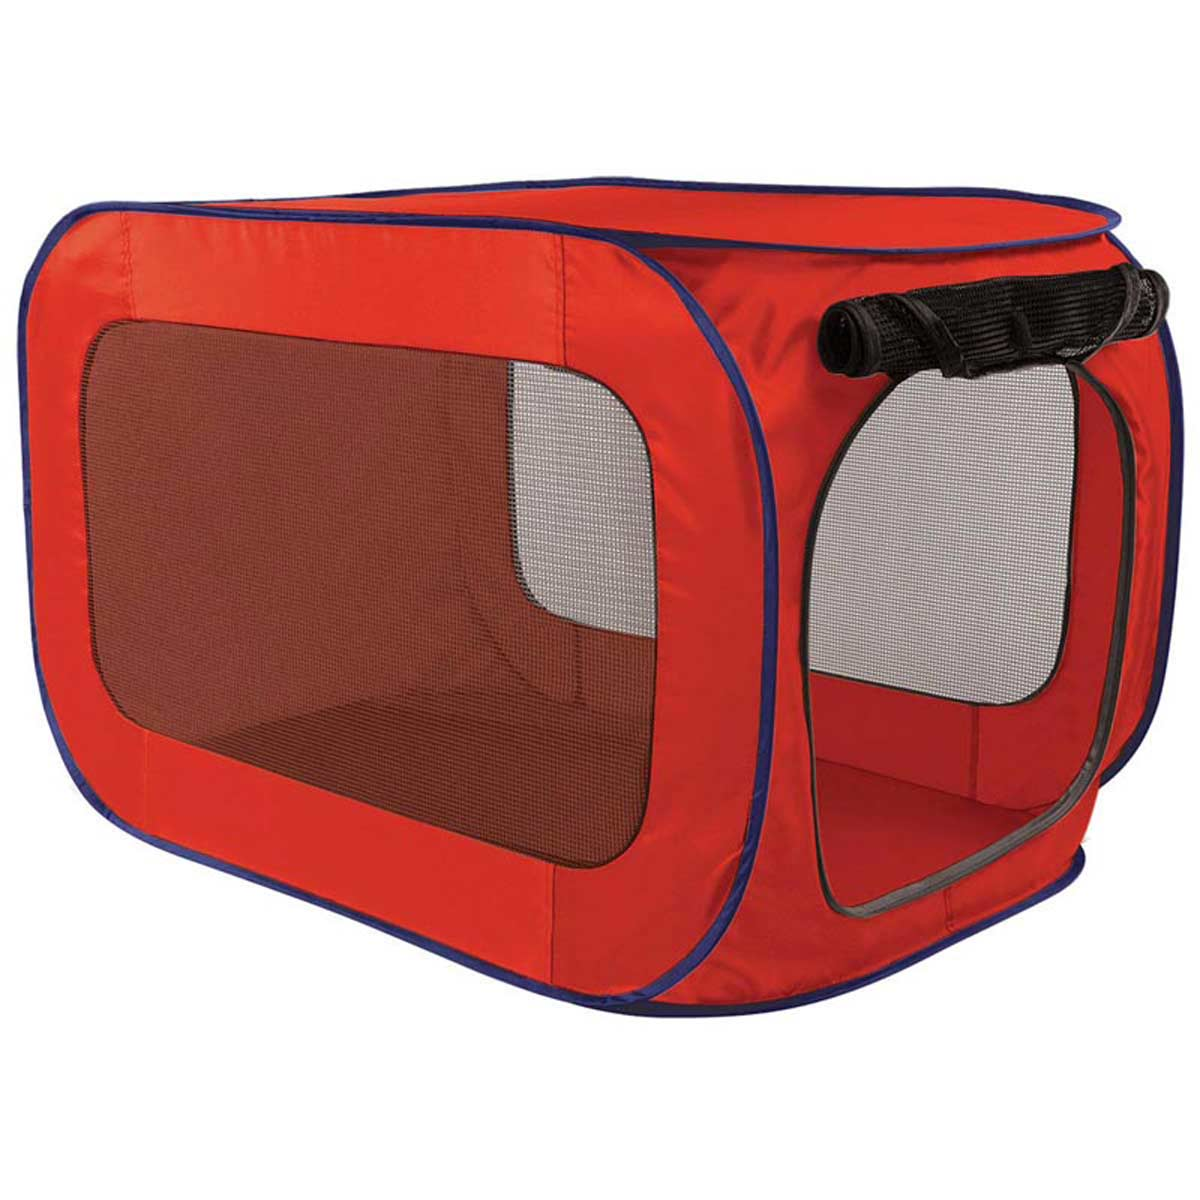 Red Professional Pop Open Dog Kennel 20 inches by 20 inches by 32 inches